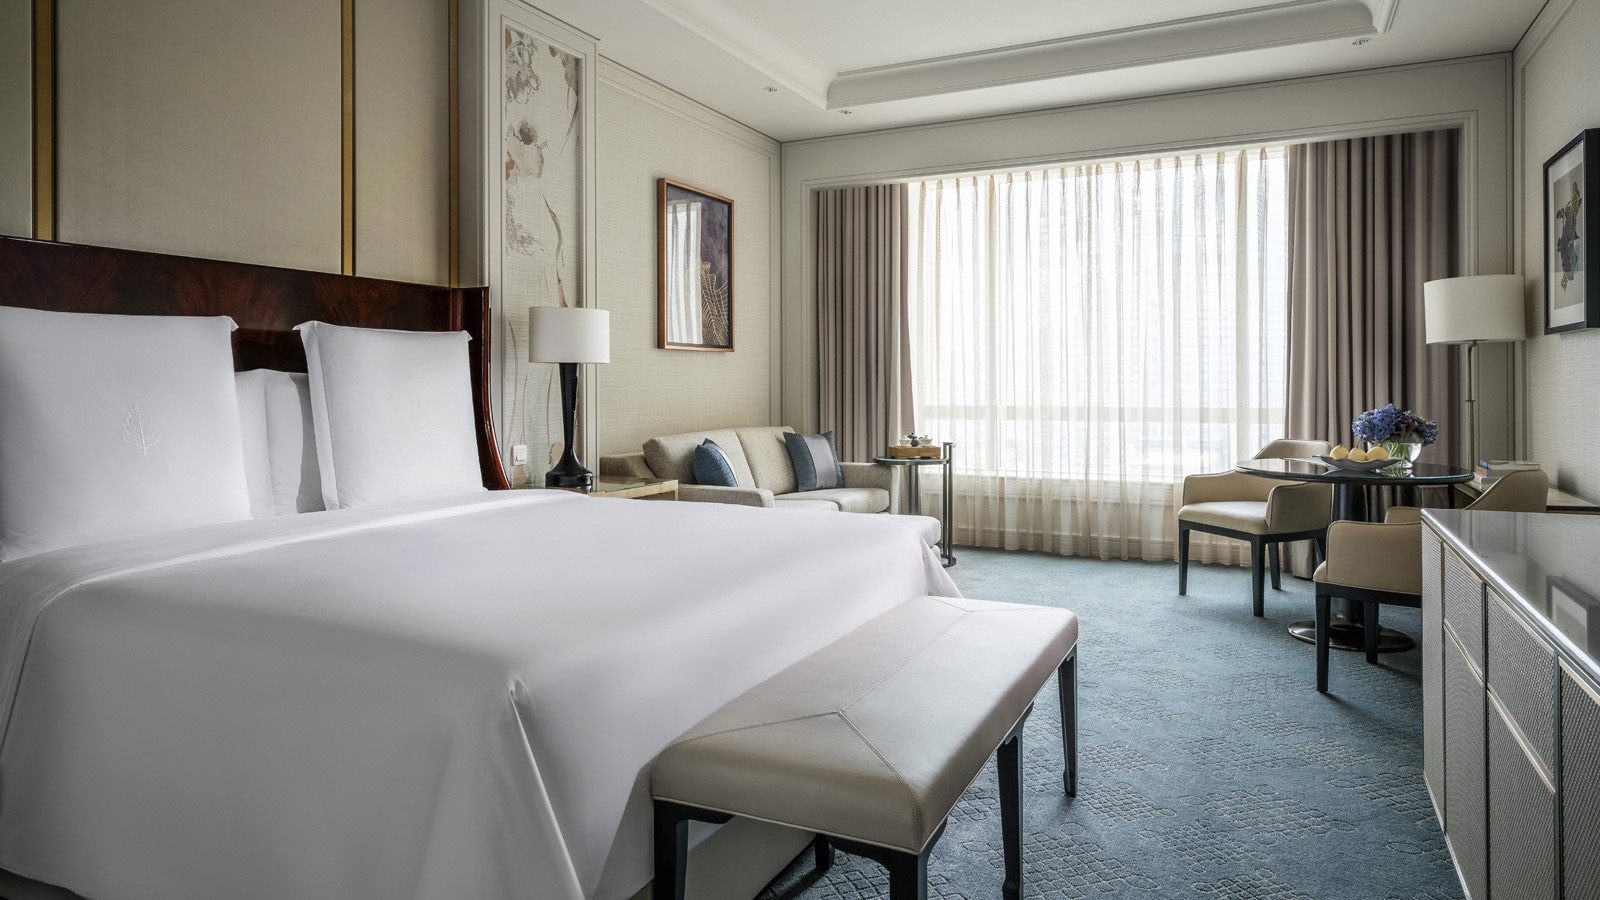 Bed and Breakfast Package Offered at Four Seasons Hotel Macau